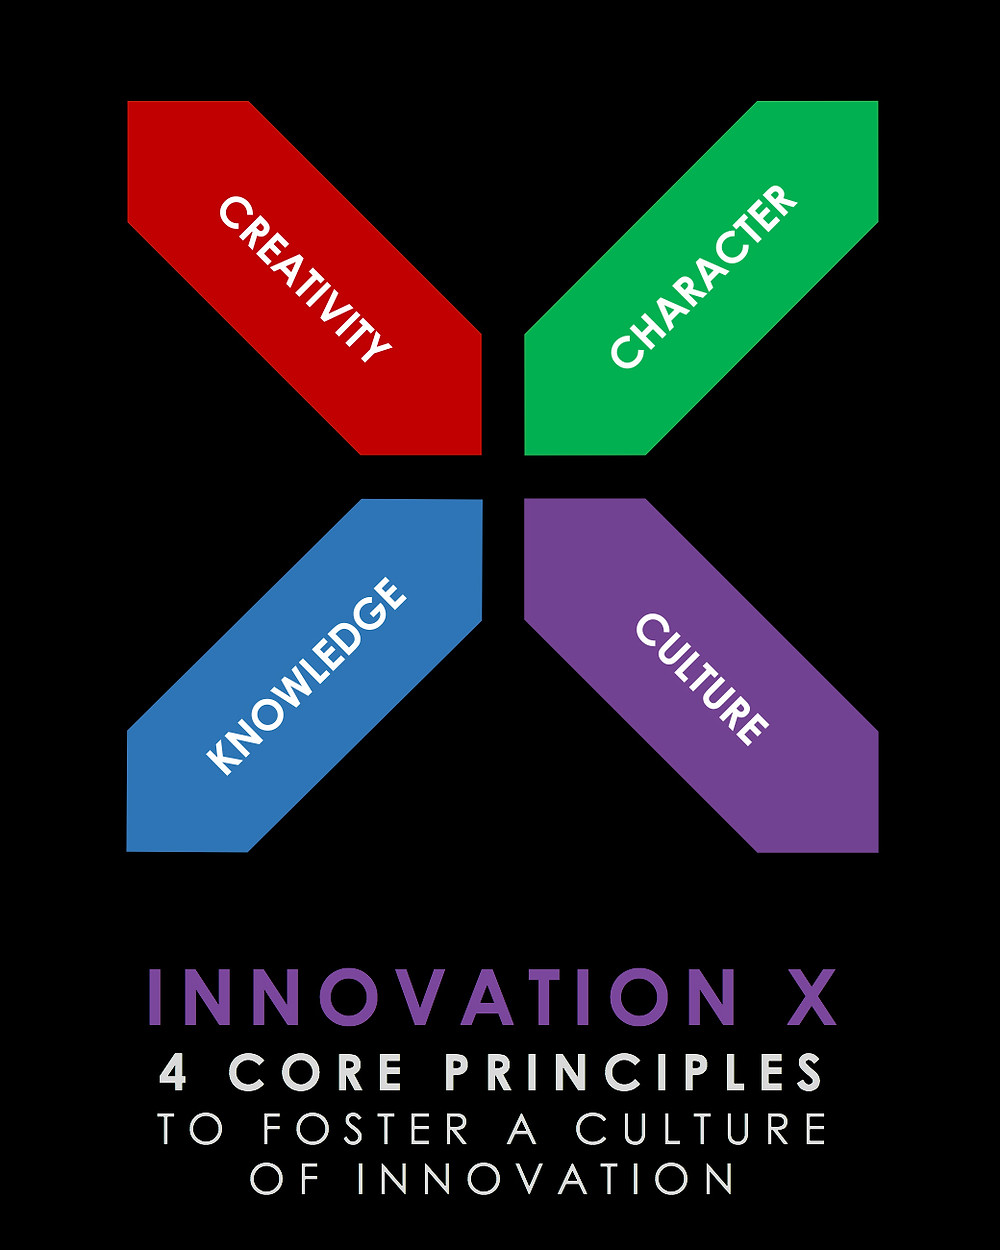 4 core principles to foster a culture of innovation